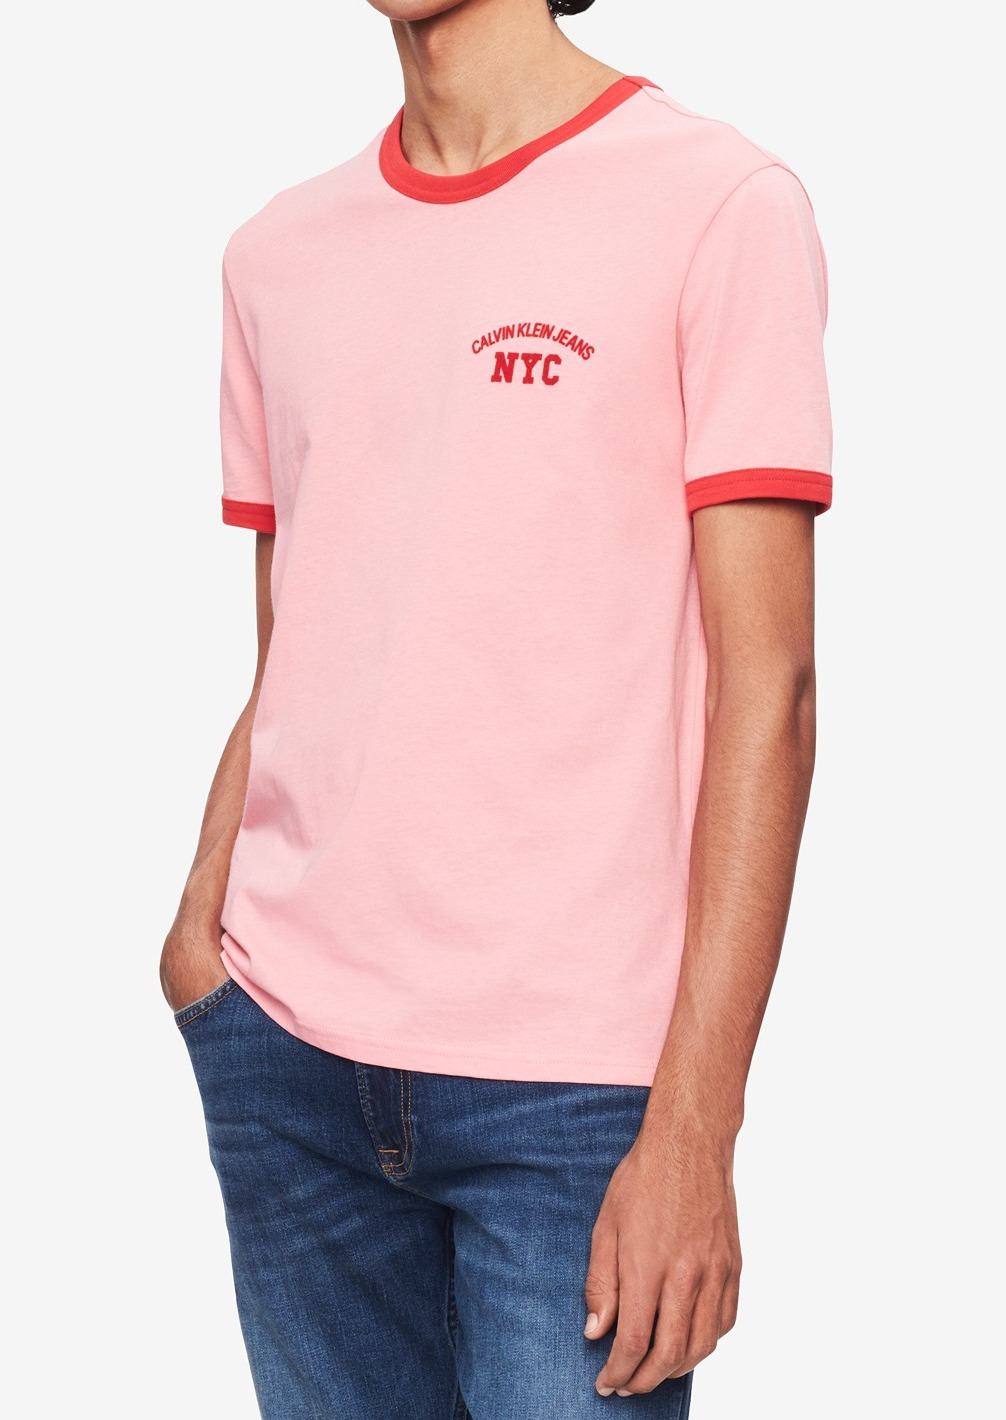 Details about Calvin Klein NEW Pink Red Mens US Size XL Ringer Graphic Tee  T-Shirt $39 356